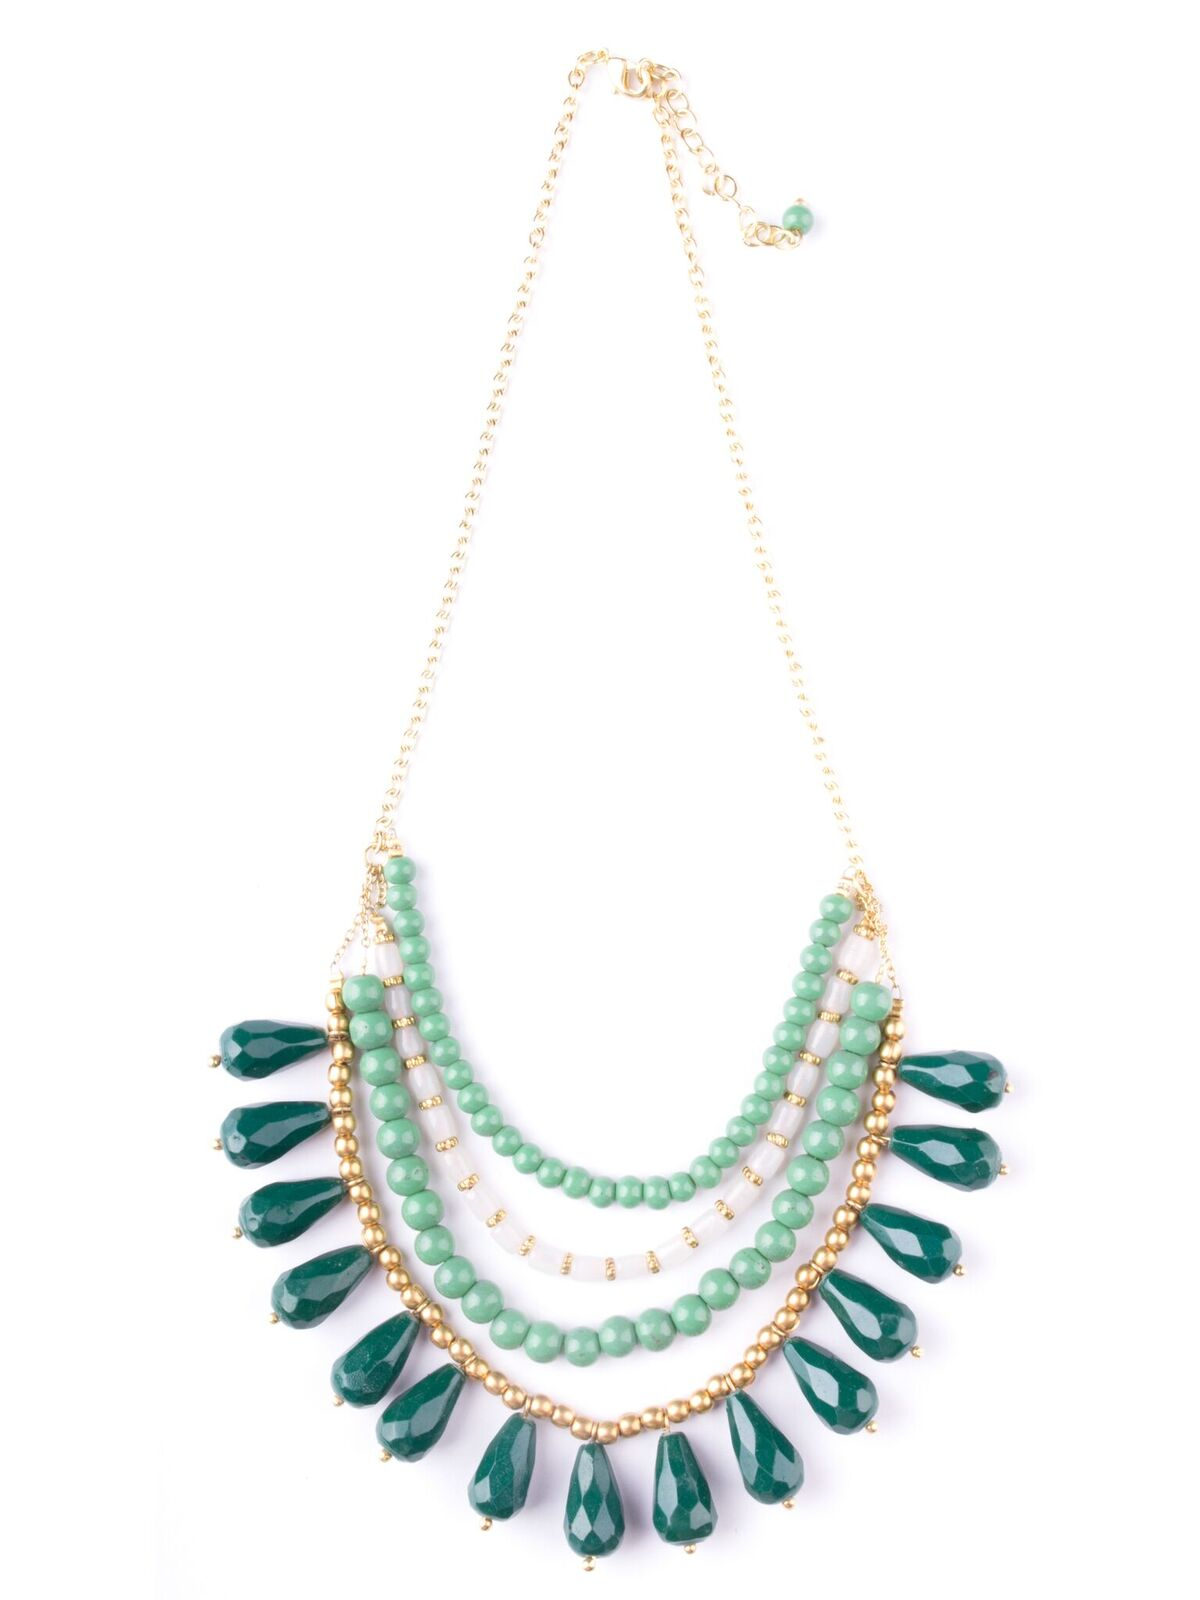 Etta Necklace - Green